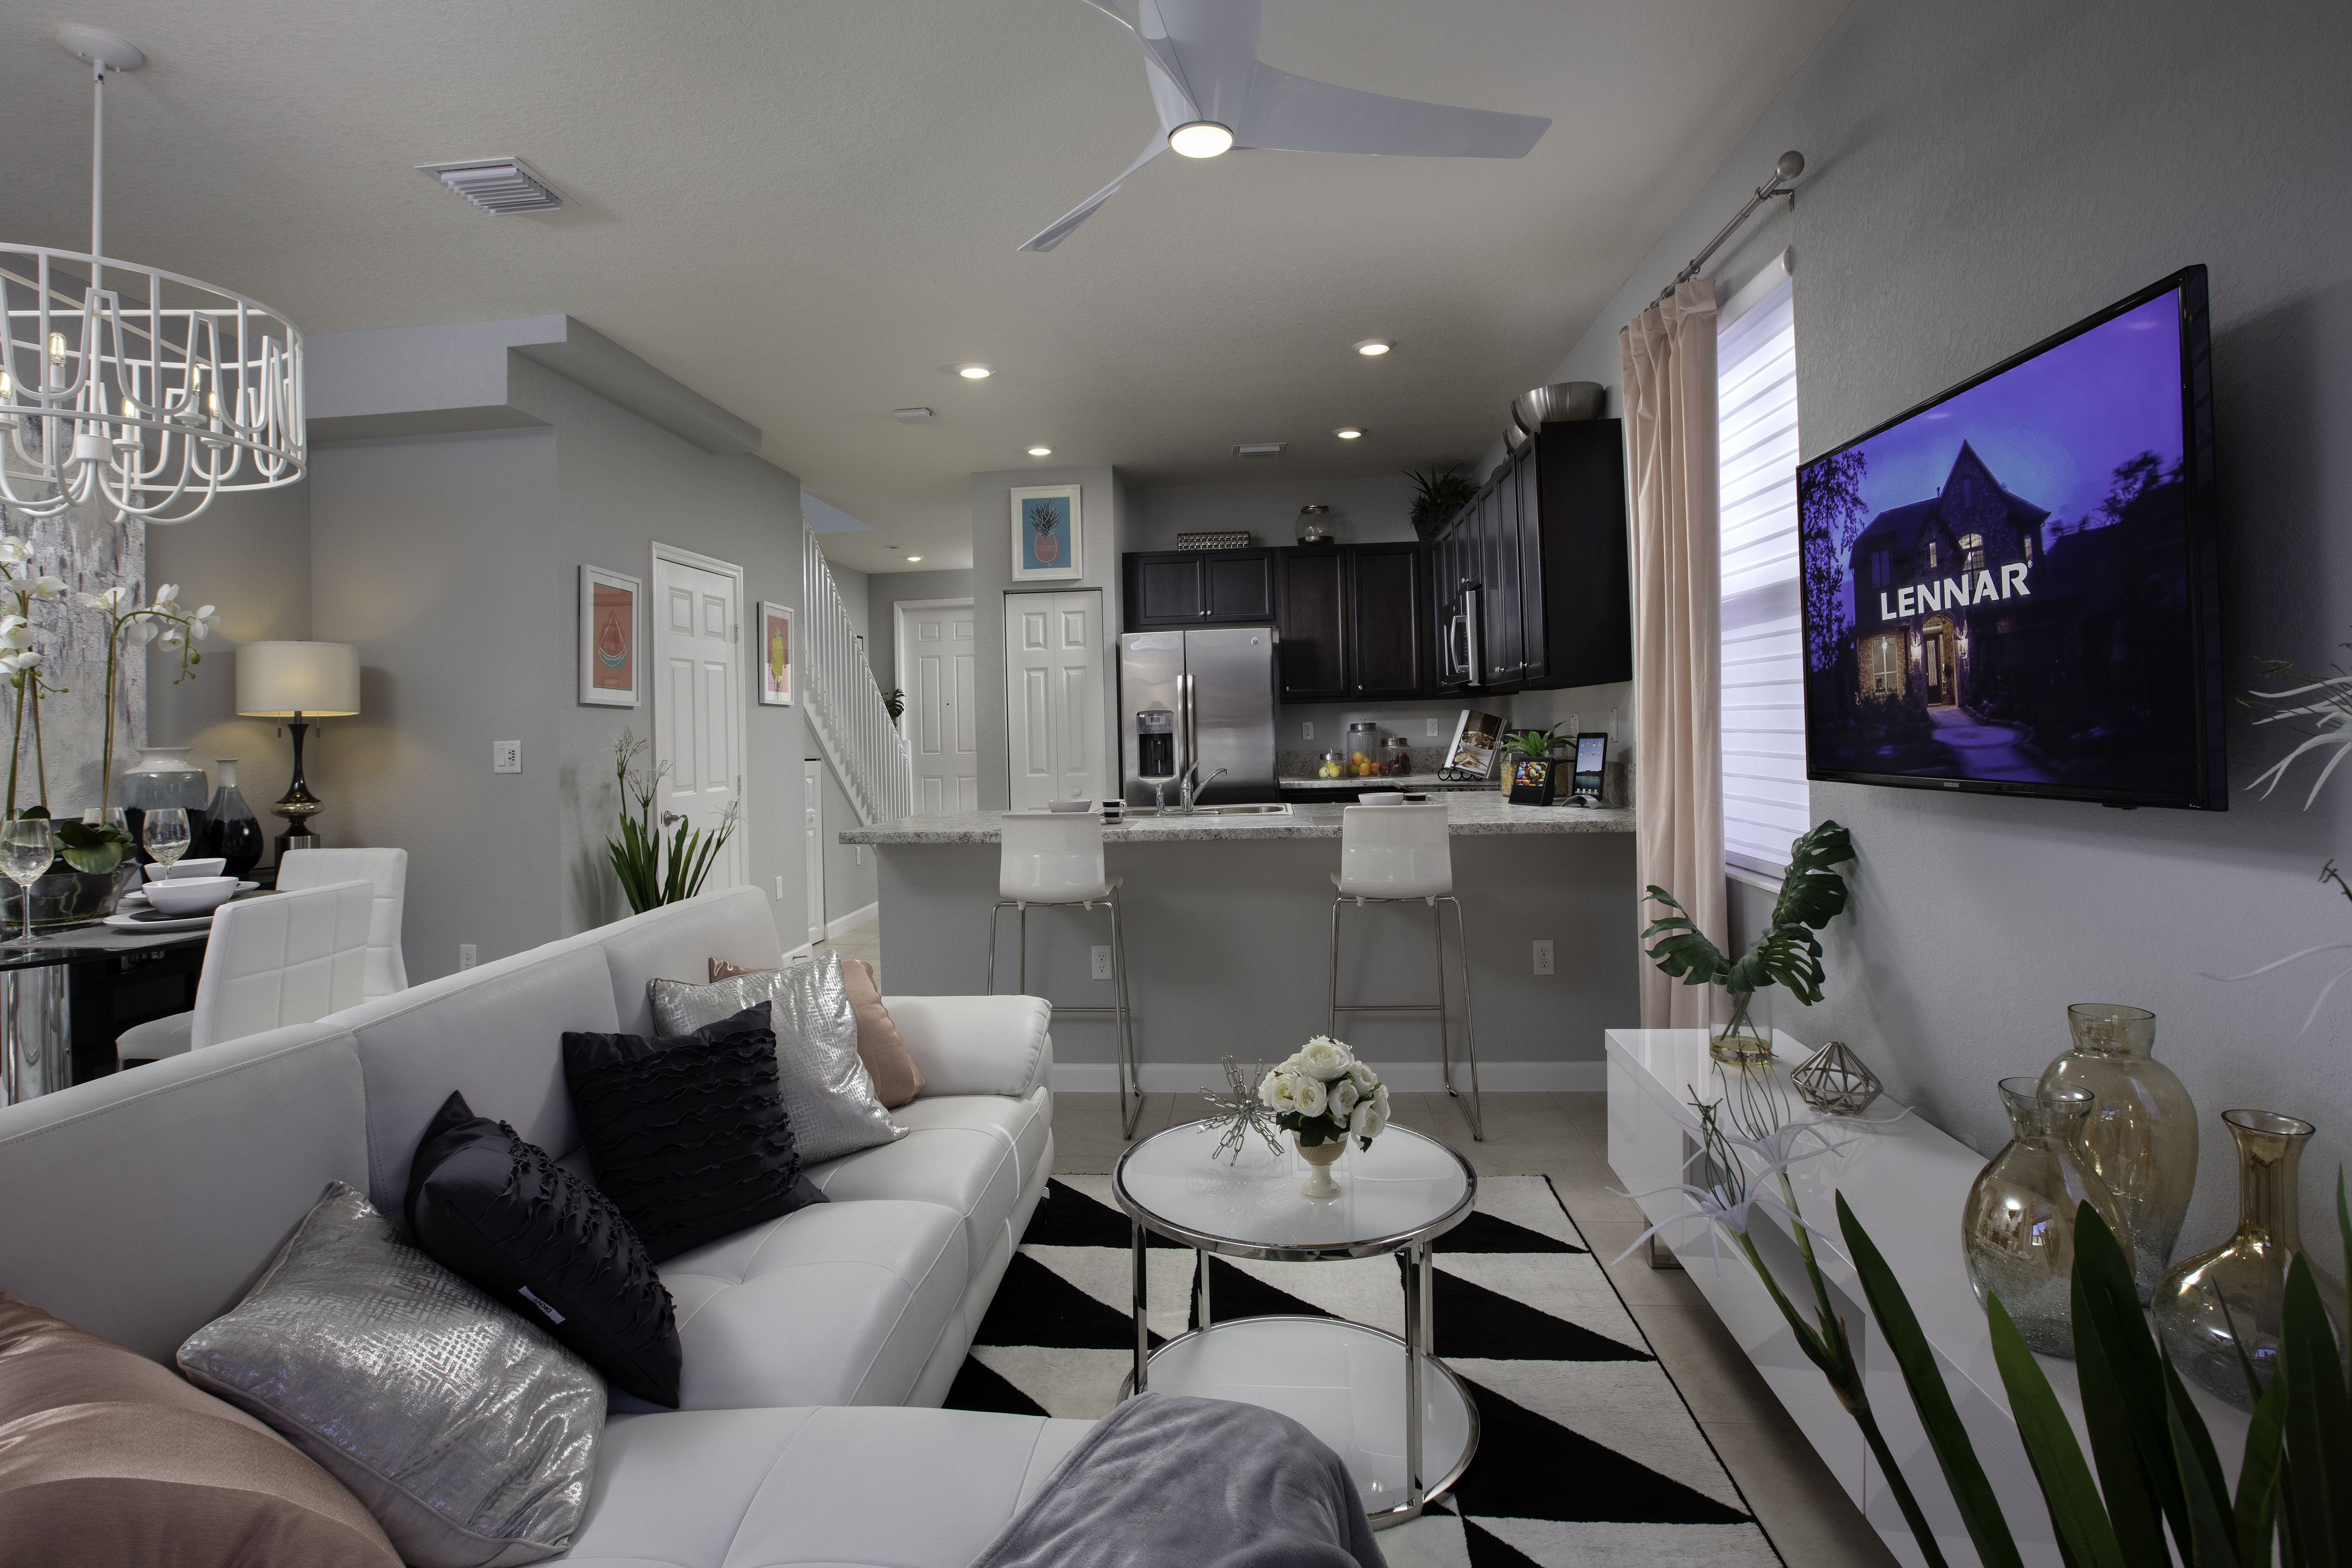 The Perfect Spot For Girl S Night Is Your New Lennar Home Aquabella Hialeah Fl Lennar Southeastflorida Livin Dream Living Rooms Living Room Goals Home